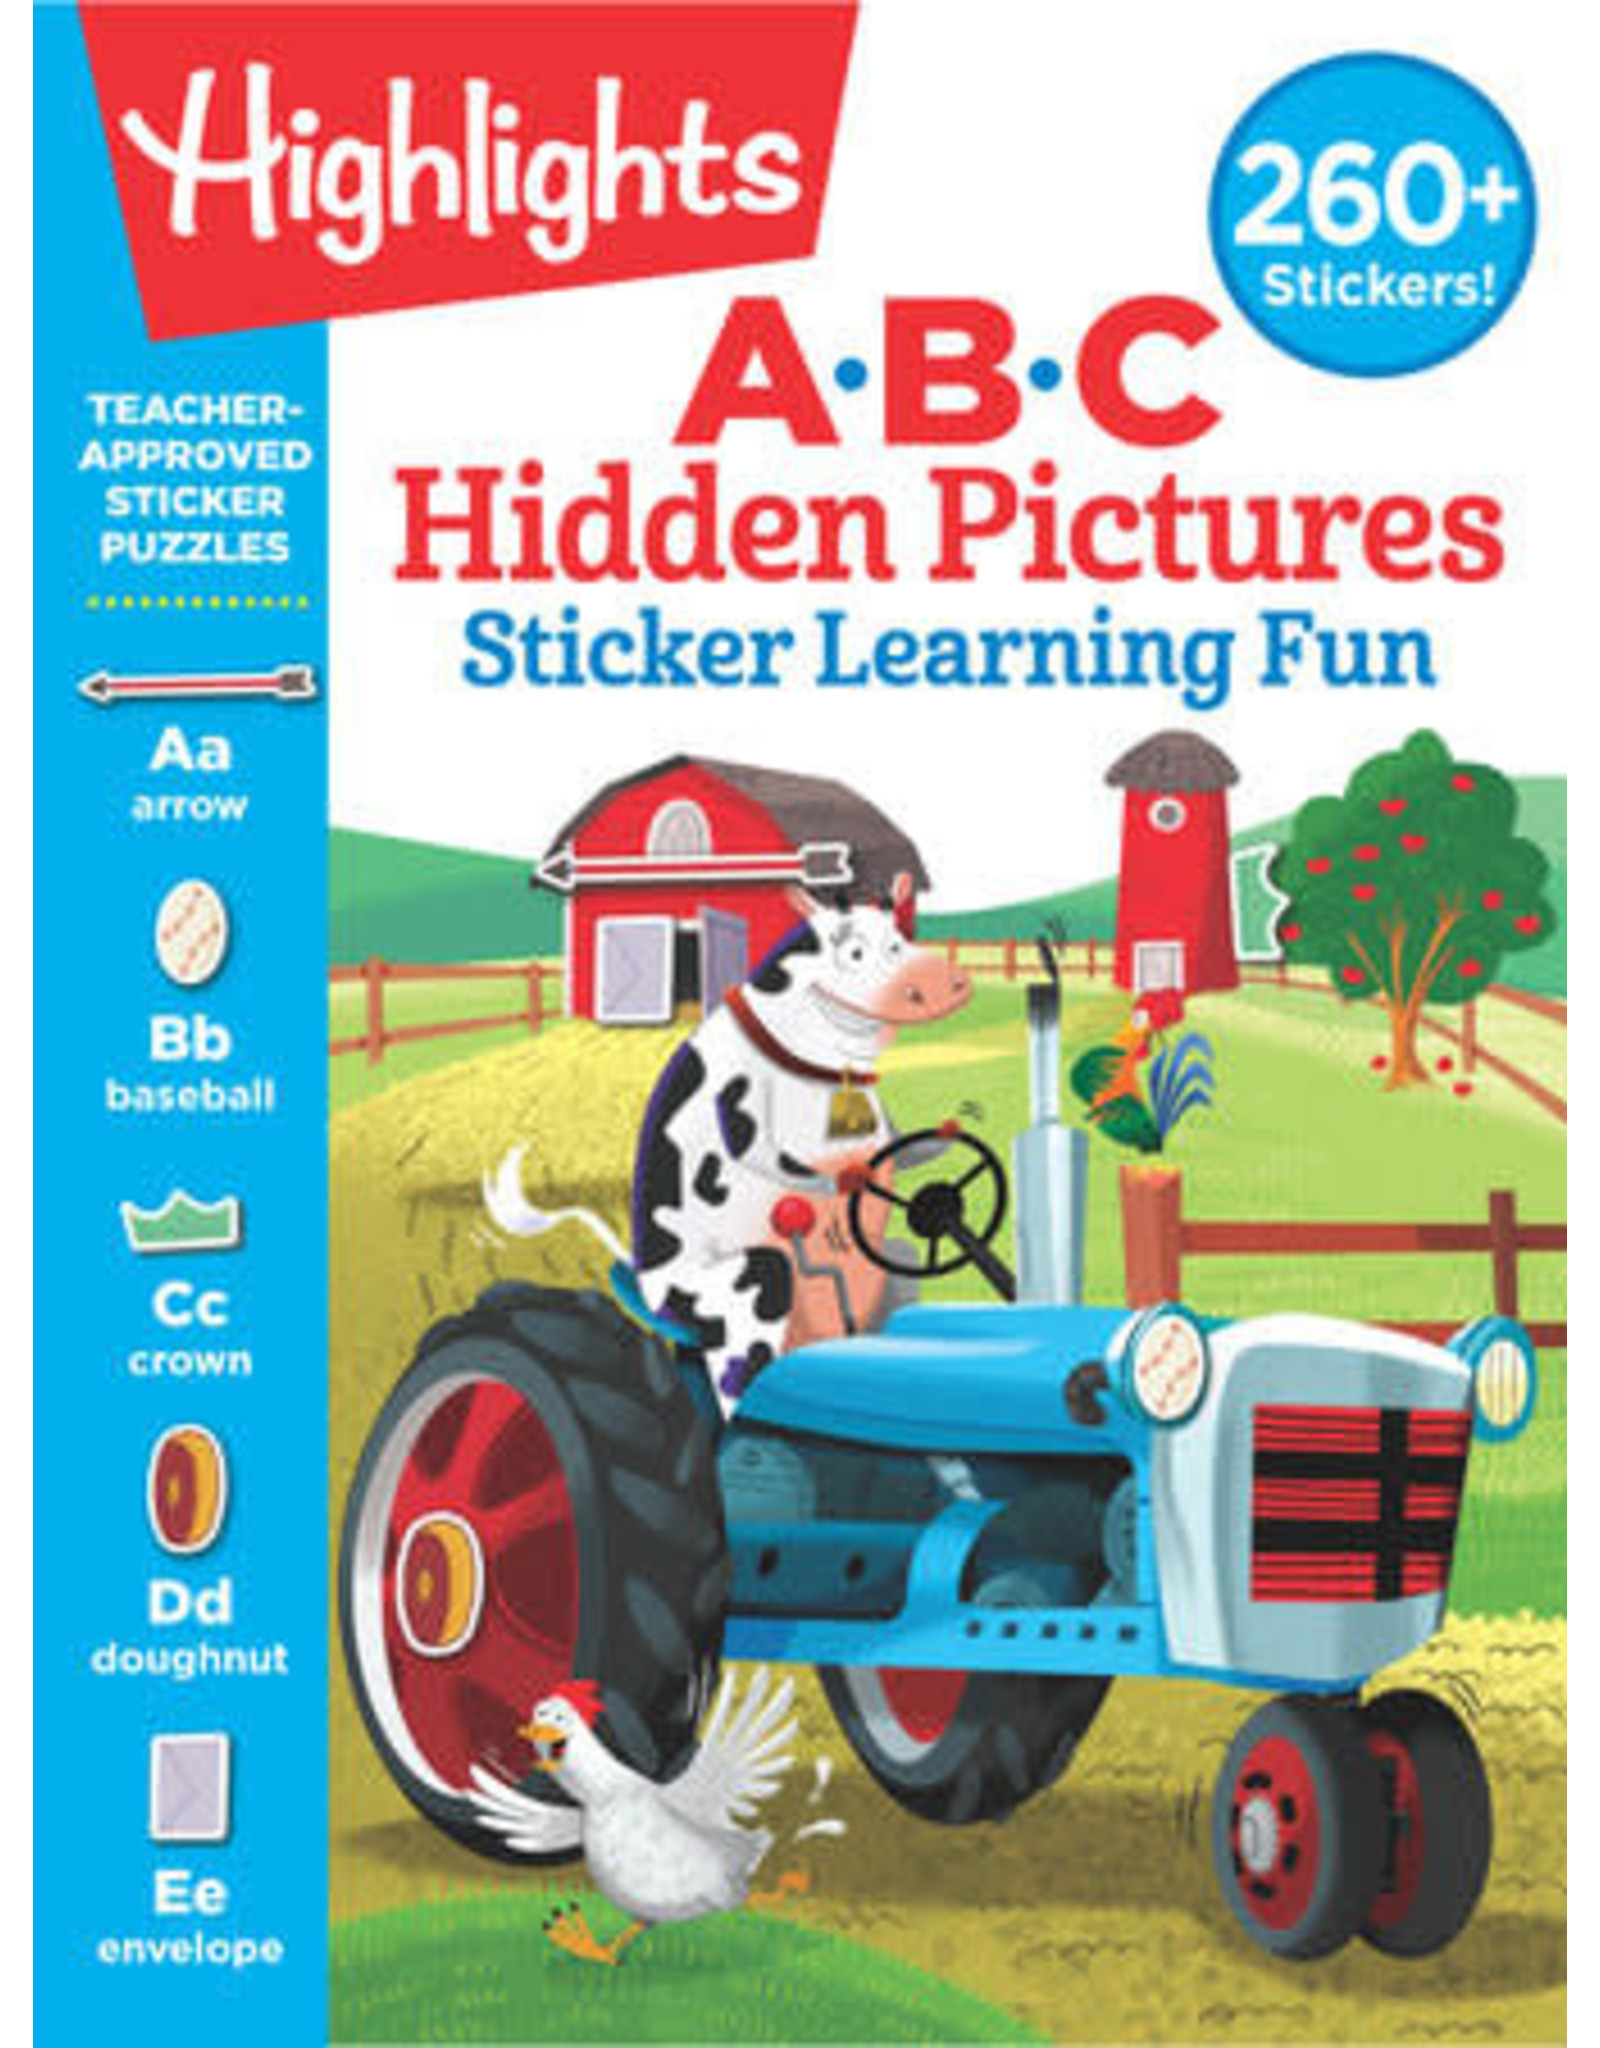 Highlights Highlights ABC Hidden Pictures Sticker Learning Fun